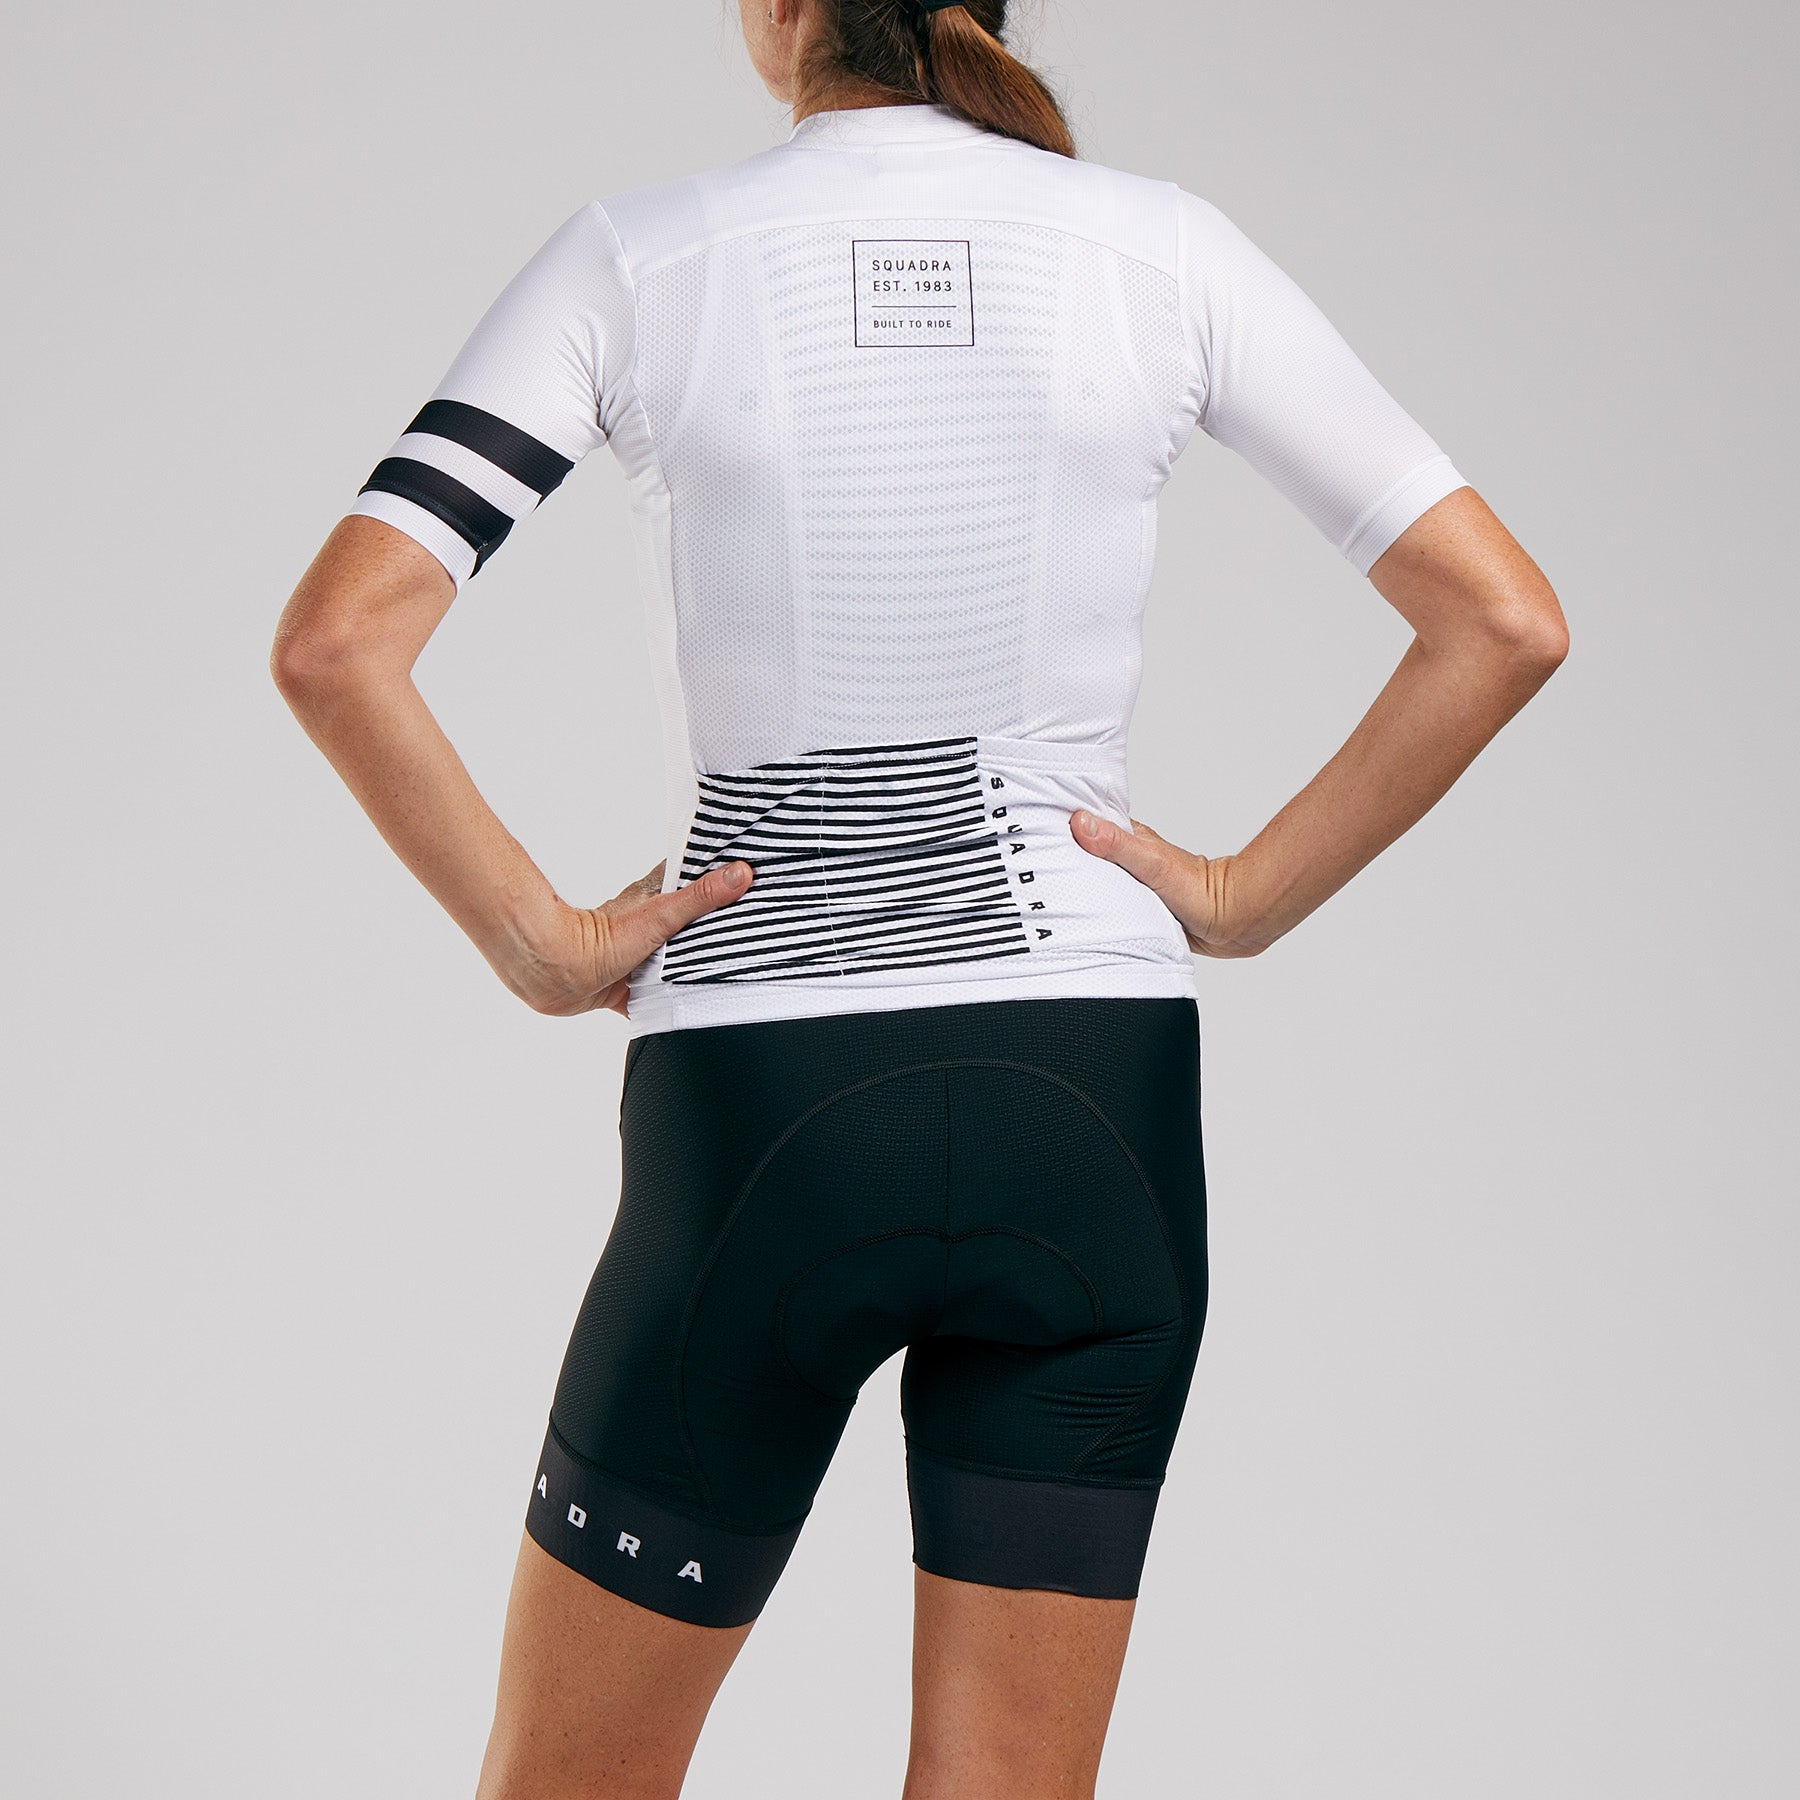 WOMENS PRO ISSUE S/S AERO JERSEY - BLANCO